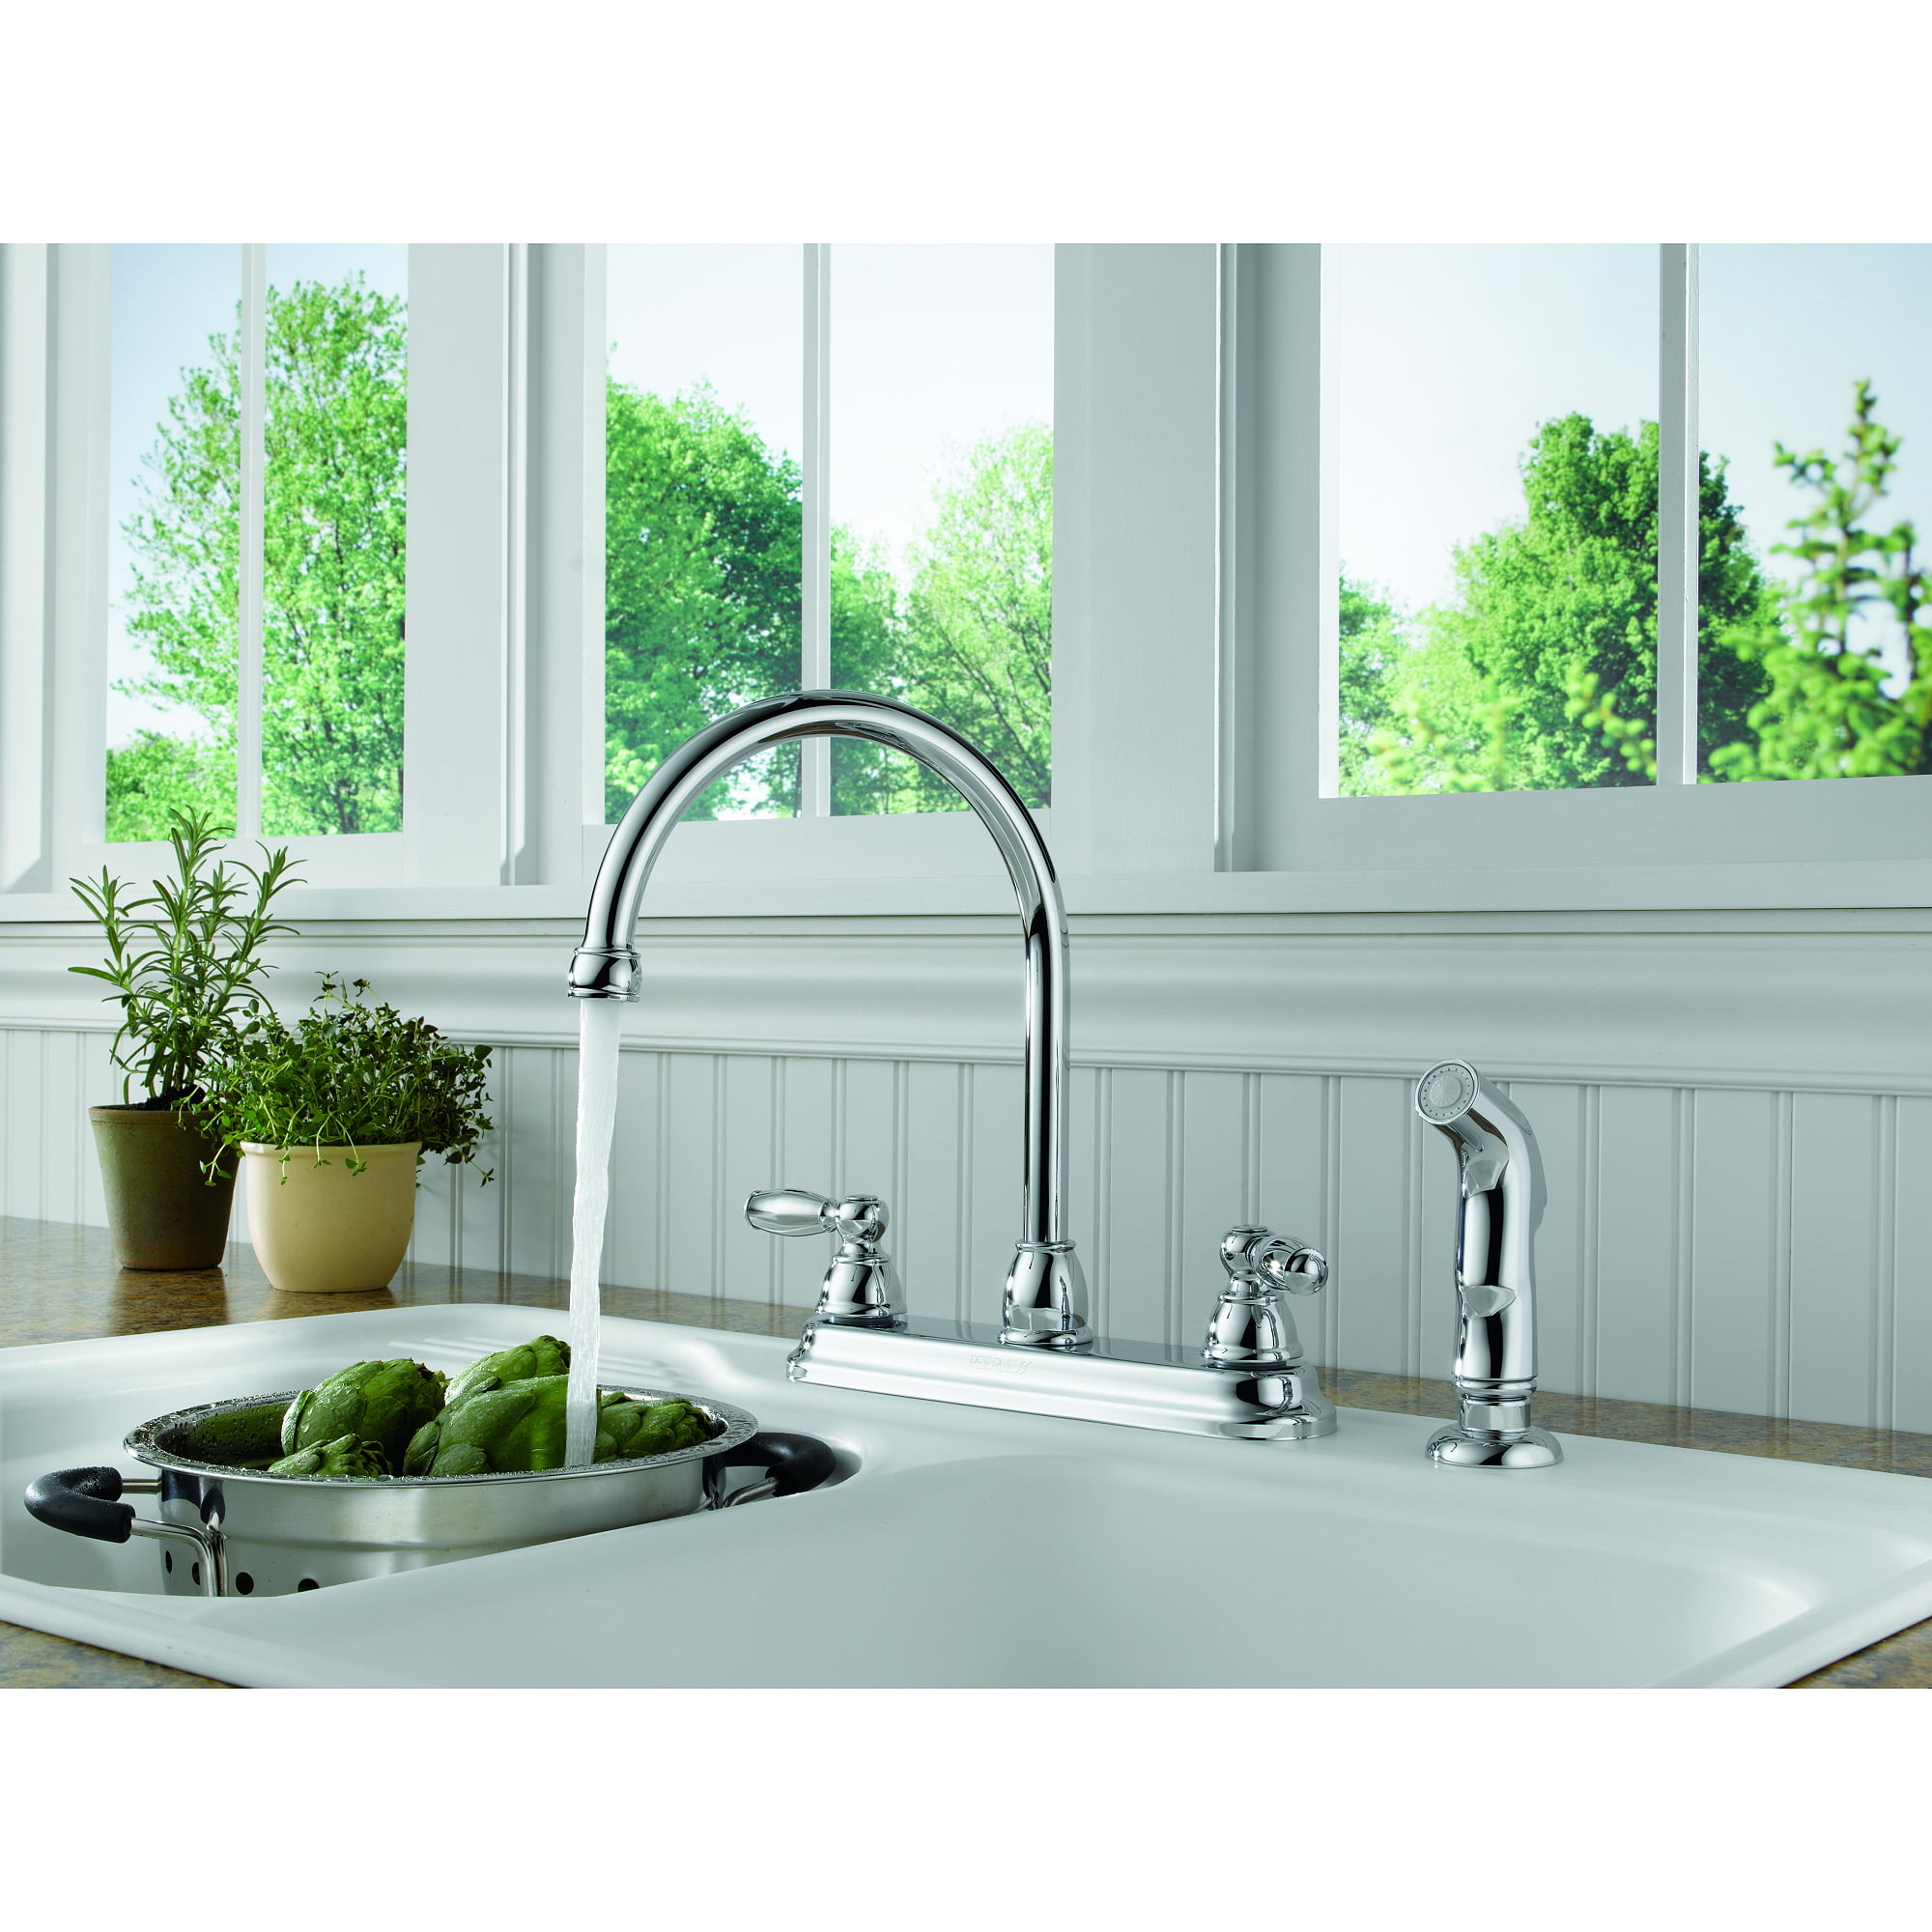 Peerless two handle kitchen faucet with side sprayer chrome p299575lf w walmart com